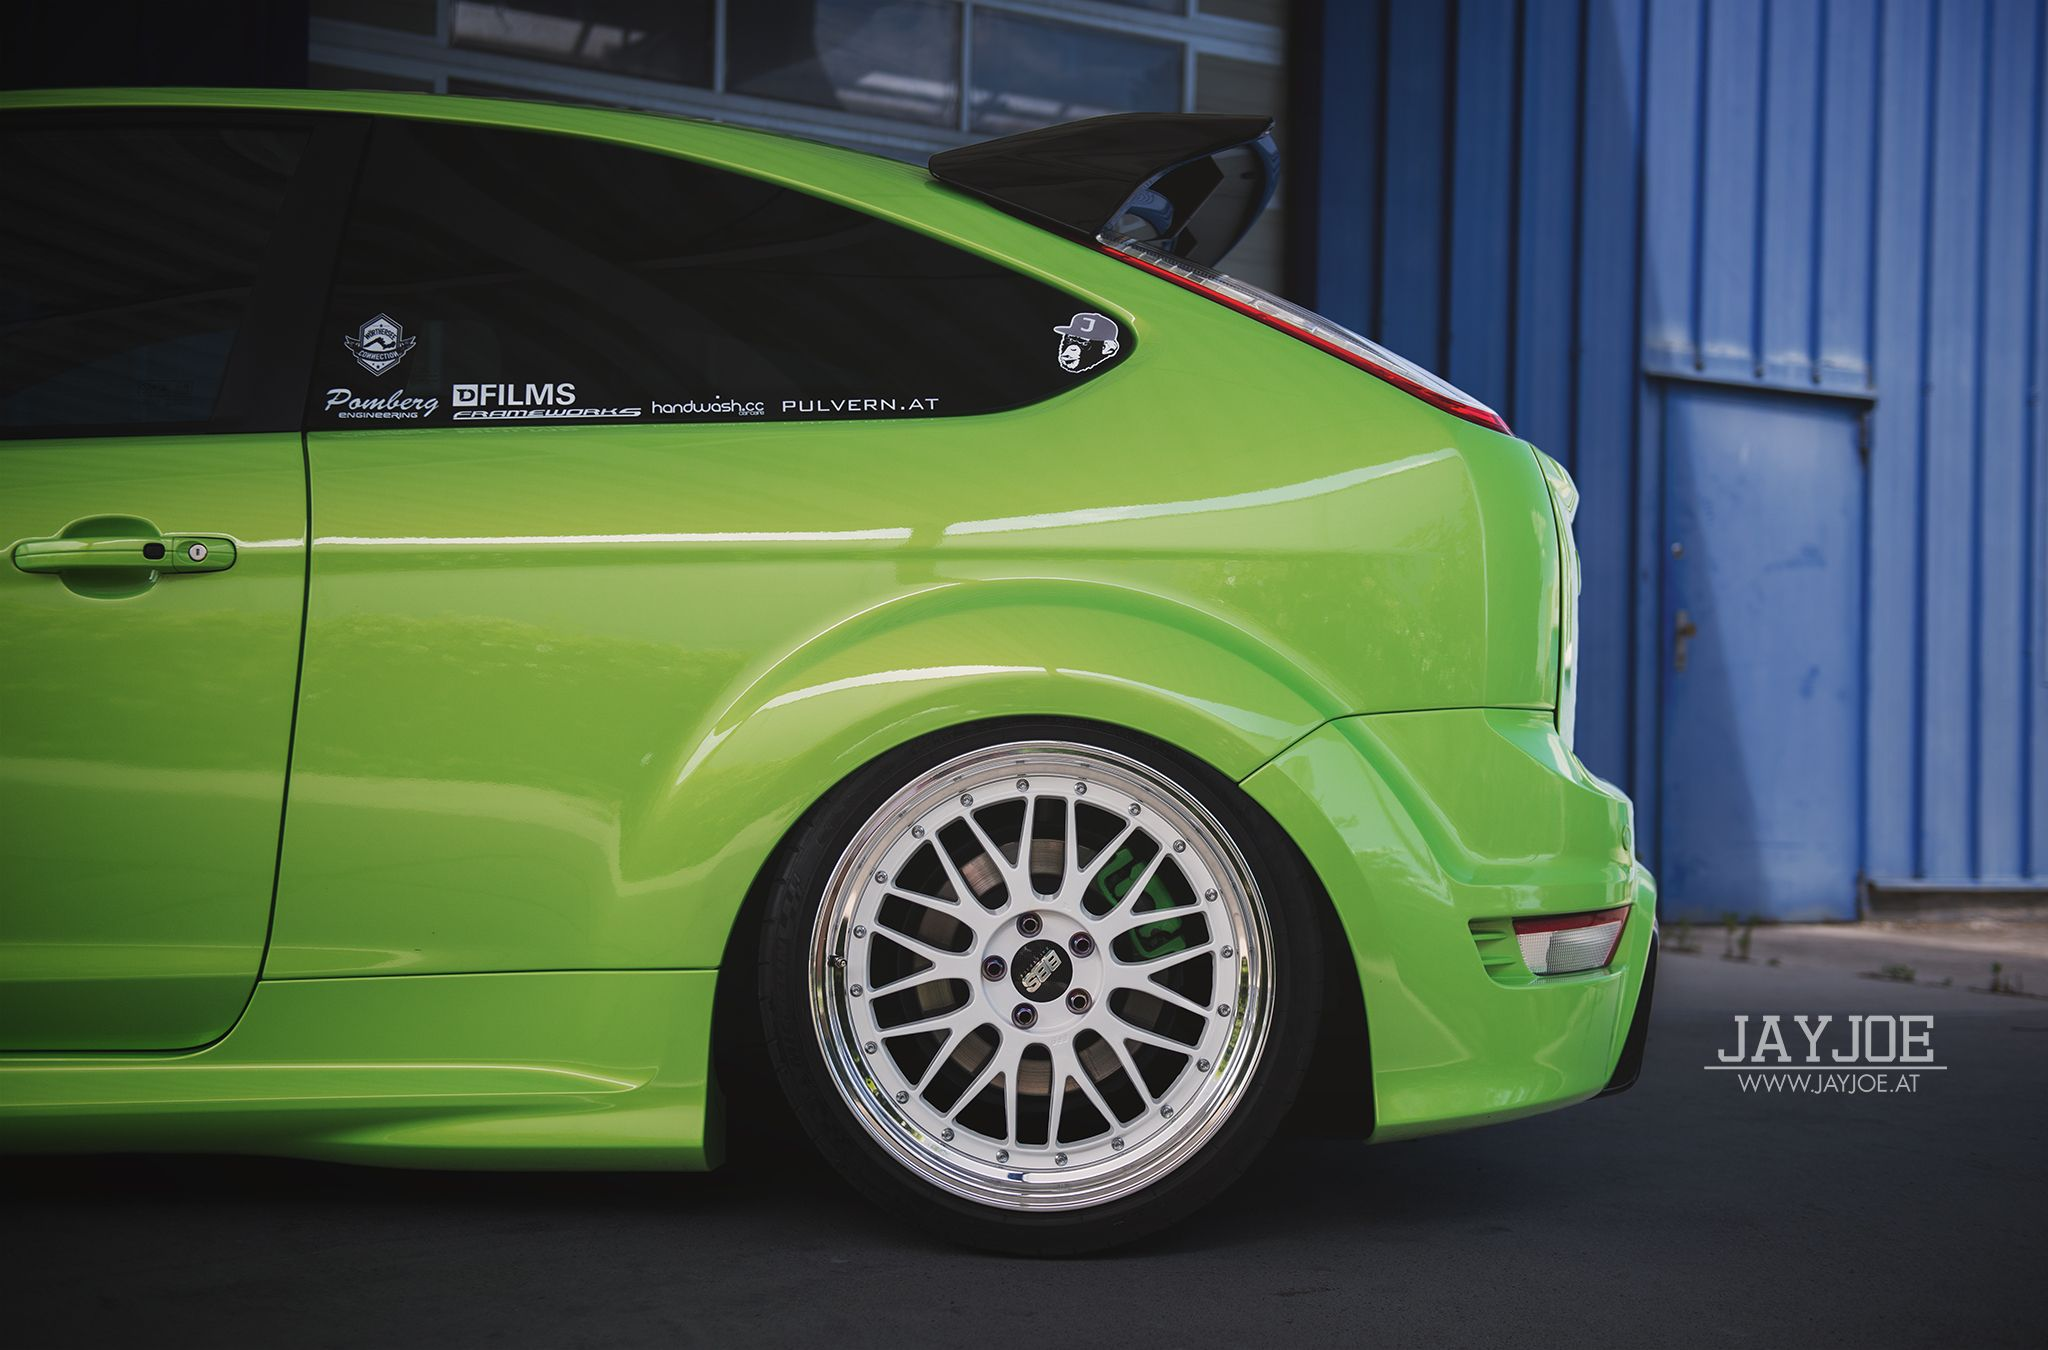 Ford focus rs mk2 all ford models pinterest focus rs ford focus and ford